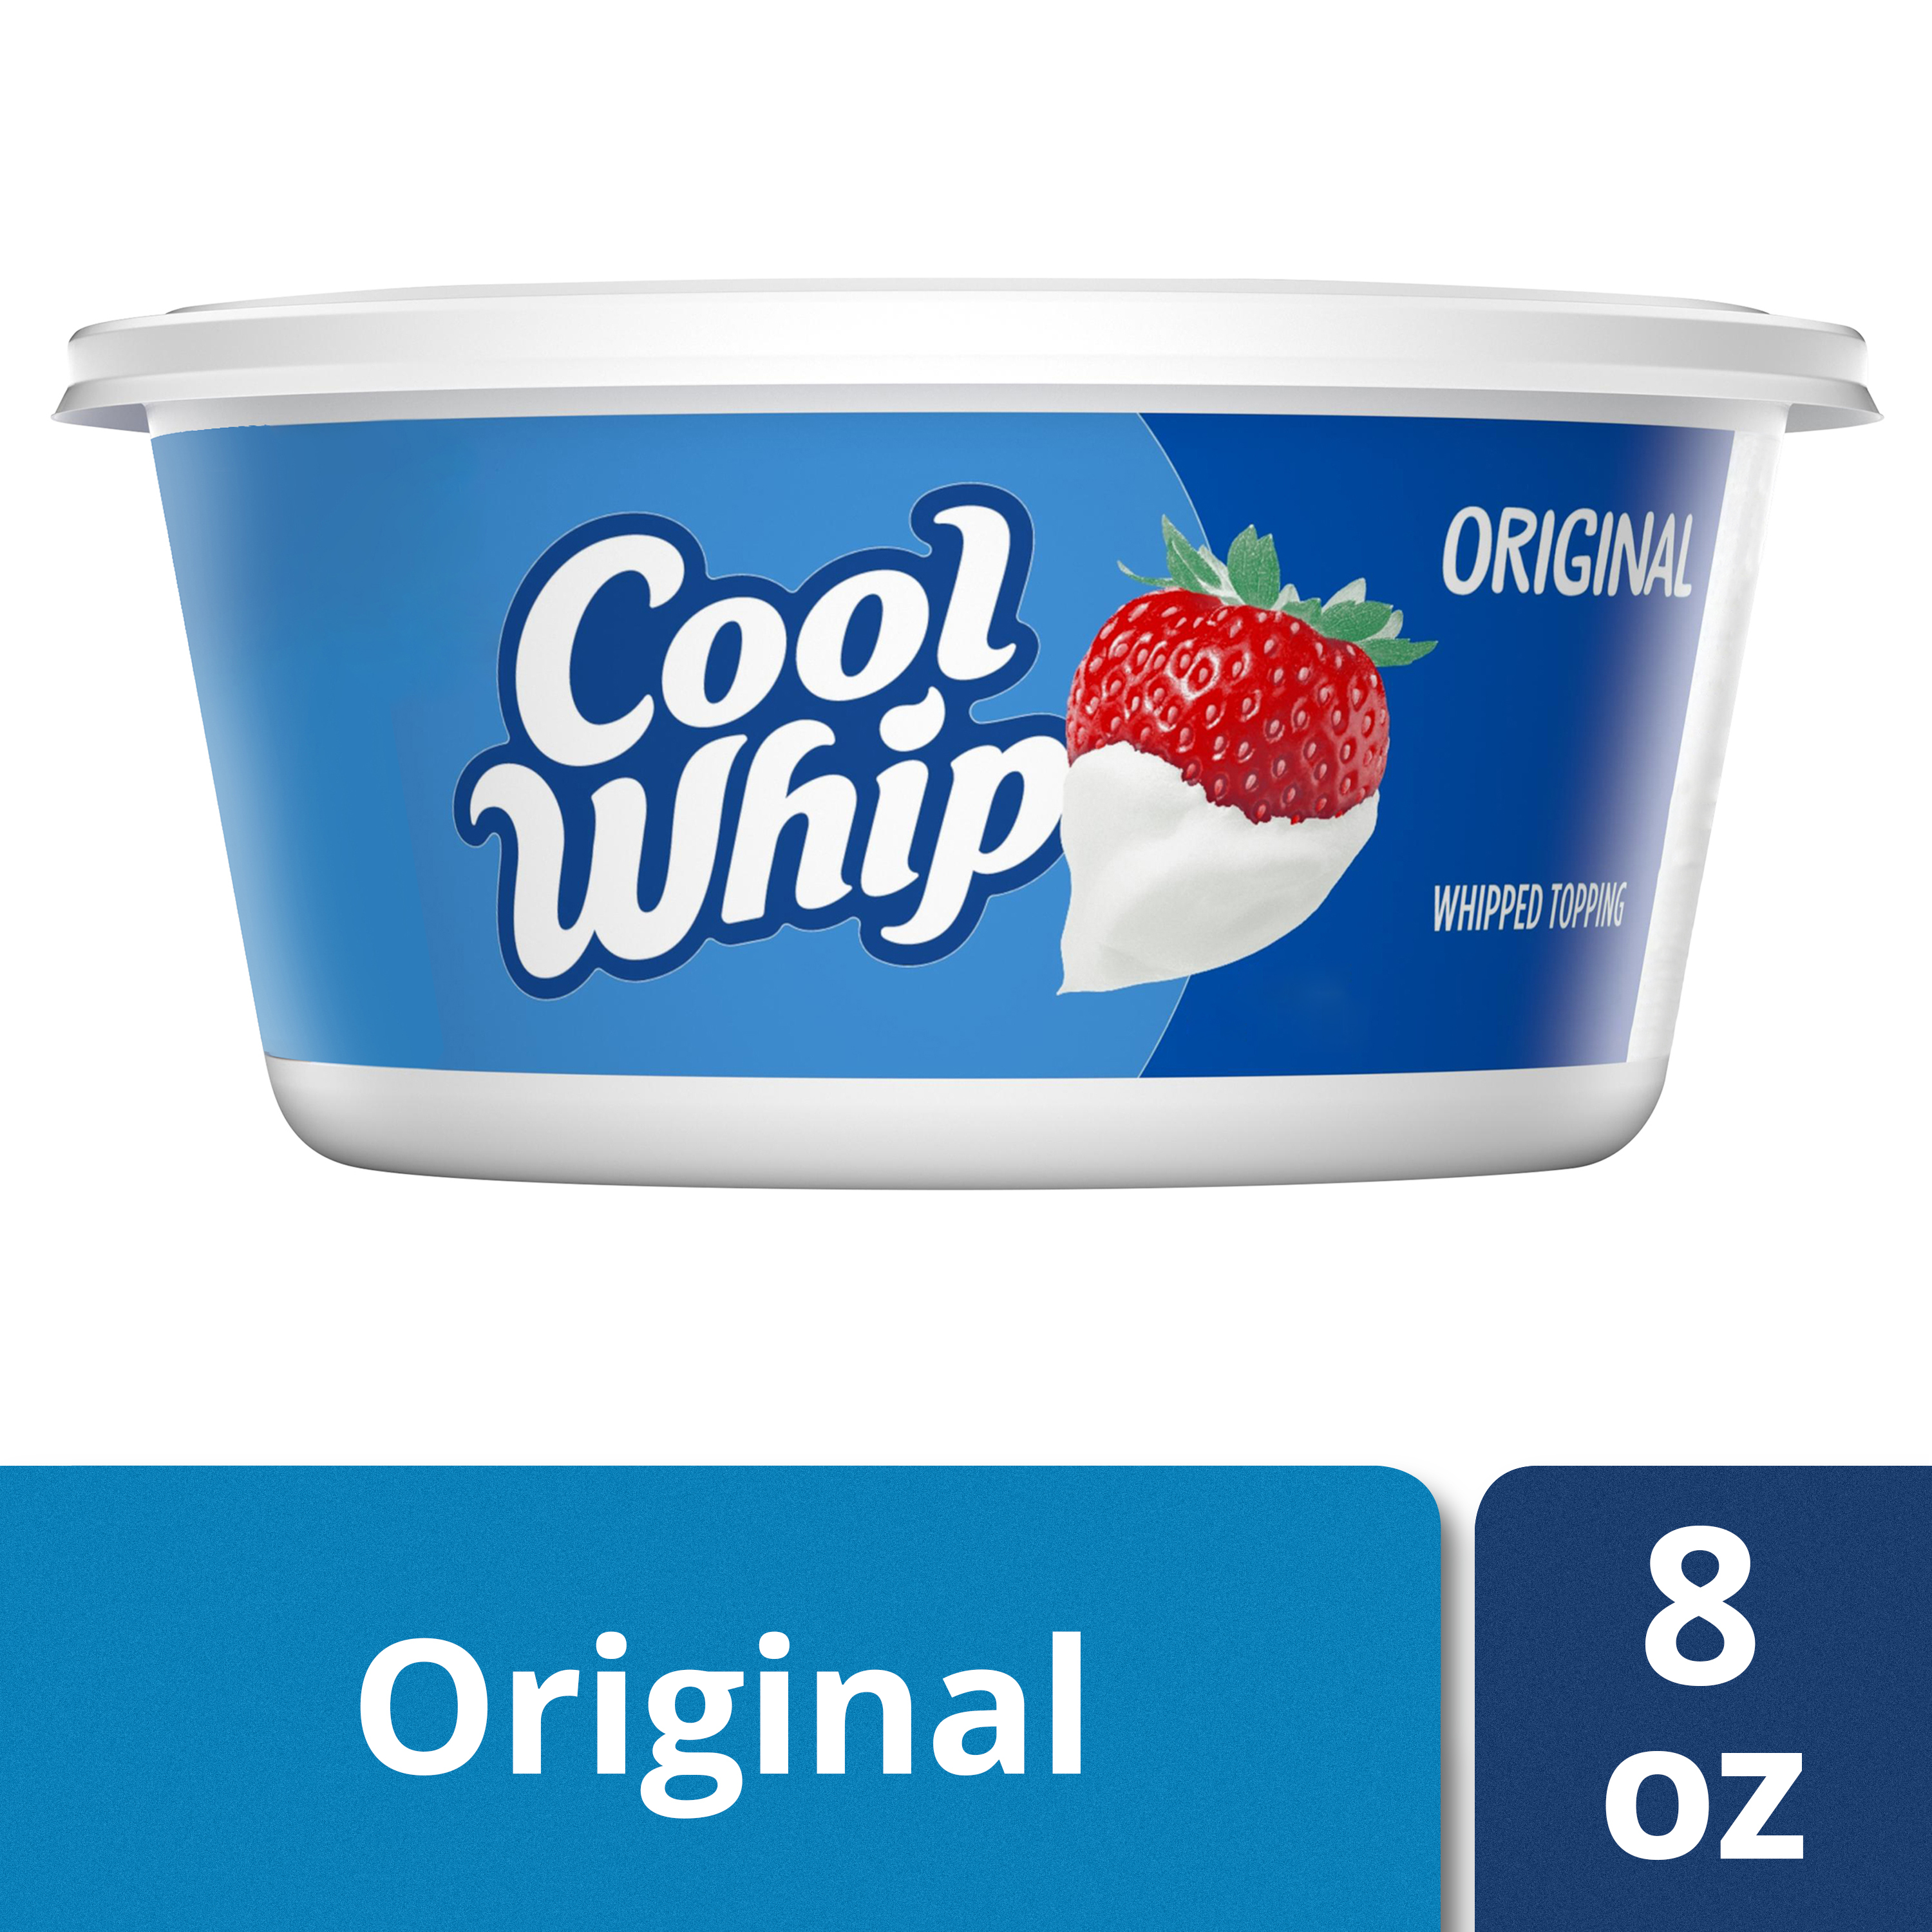 Cool Whip Original Whipped Topping, 8 oz Tub - Walmart.com